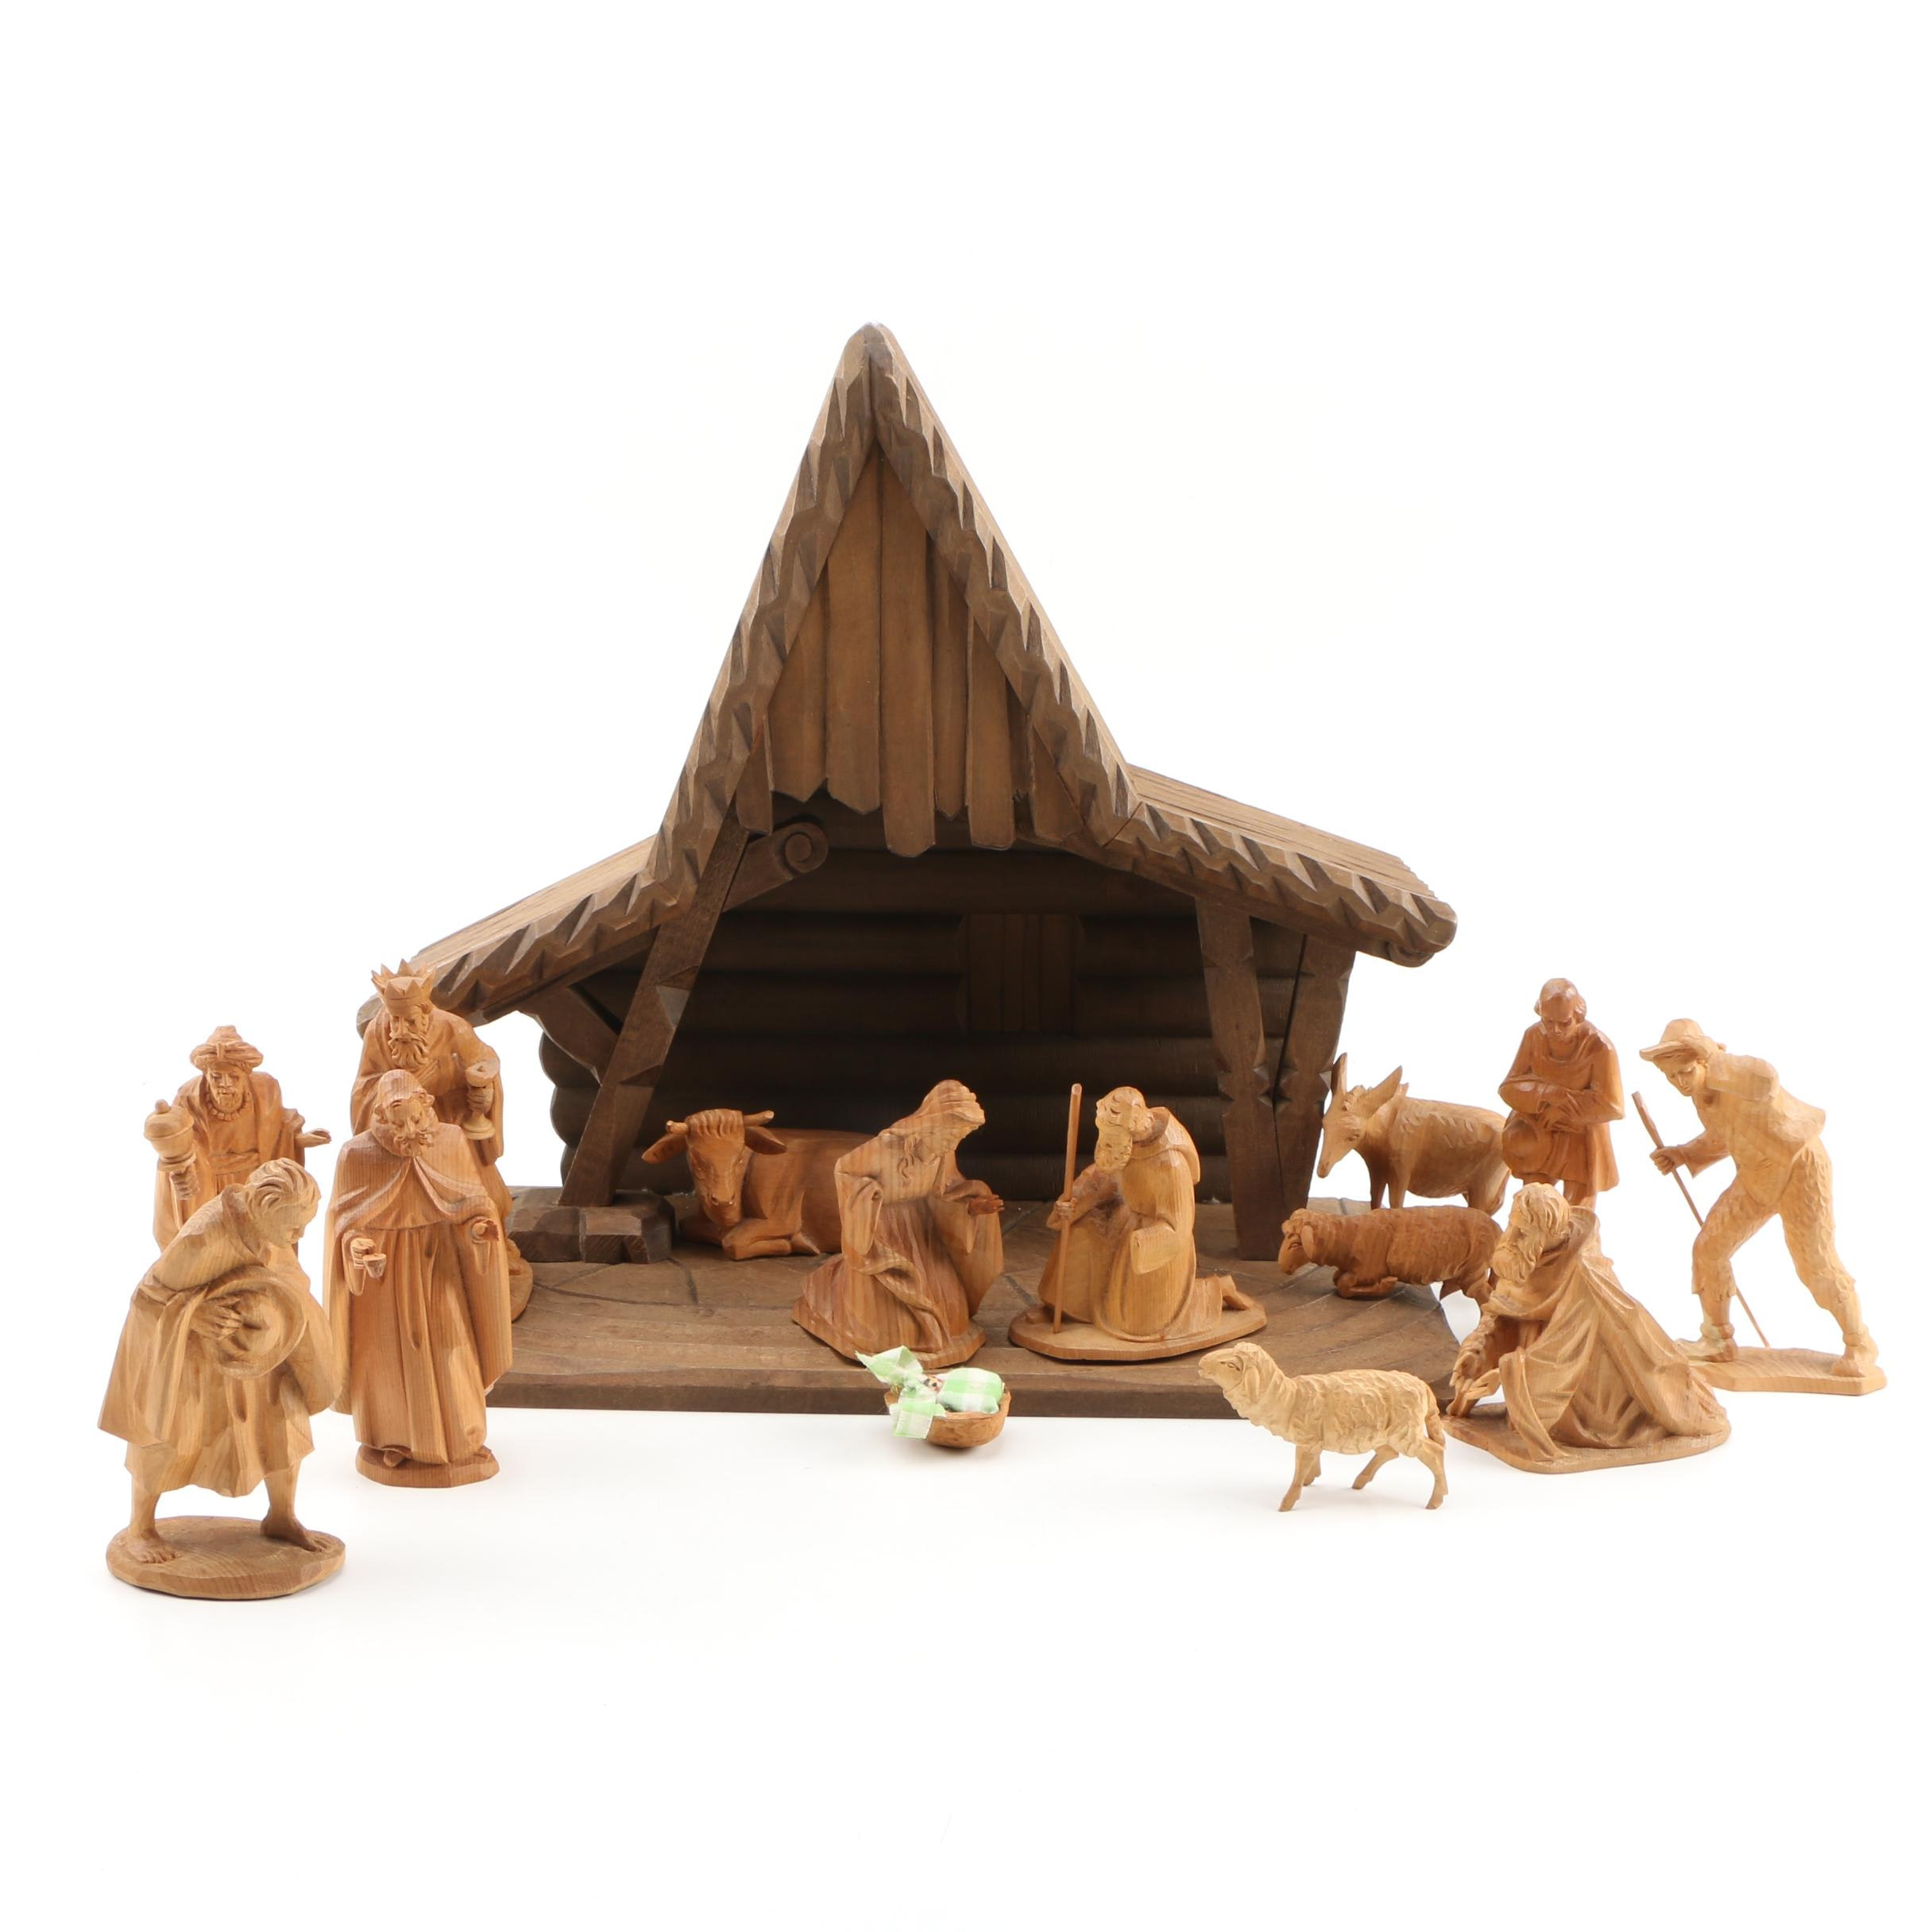 Karl Storr Carved Wooden Nativity Scene Figures with Wooden Stable